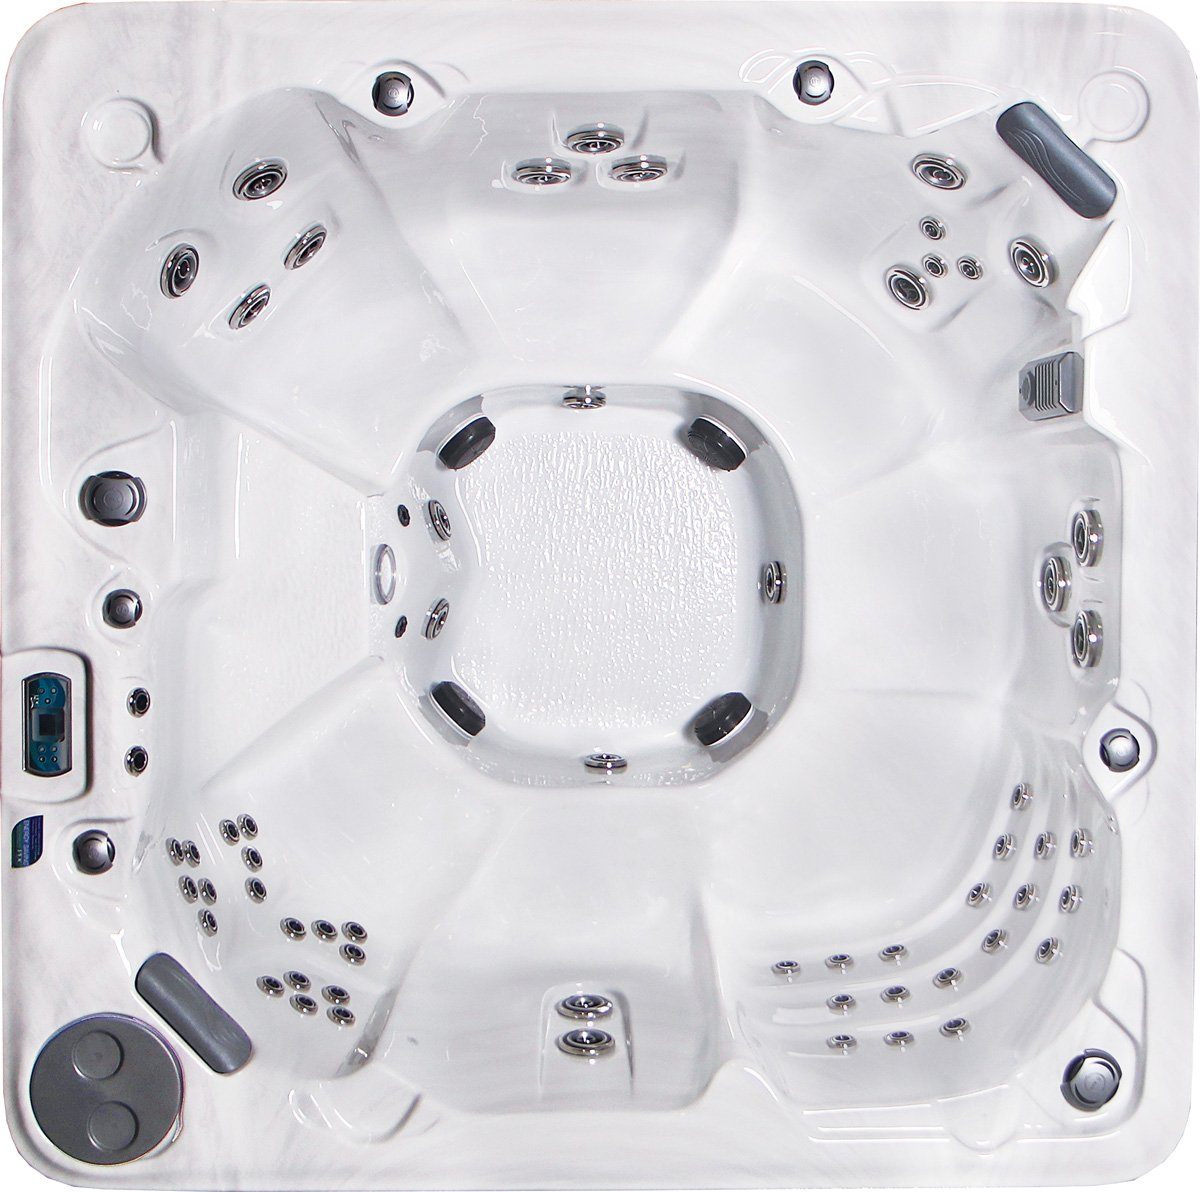 Denali Premium 7 Person Hot Tub